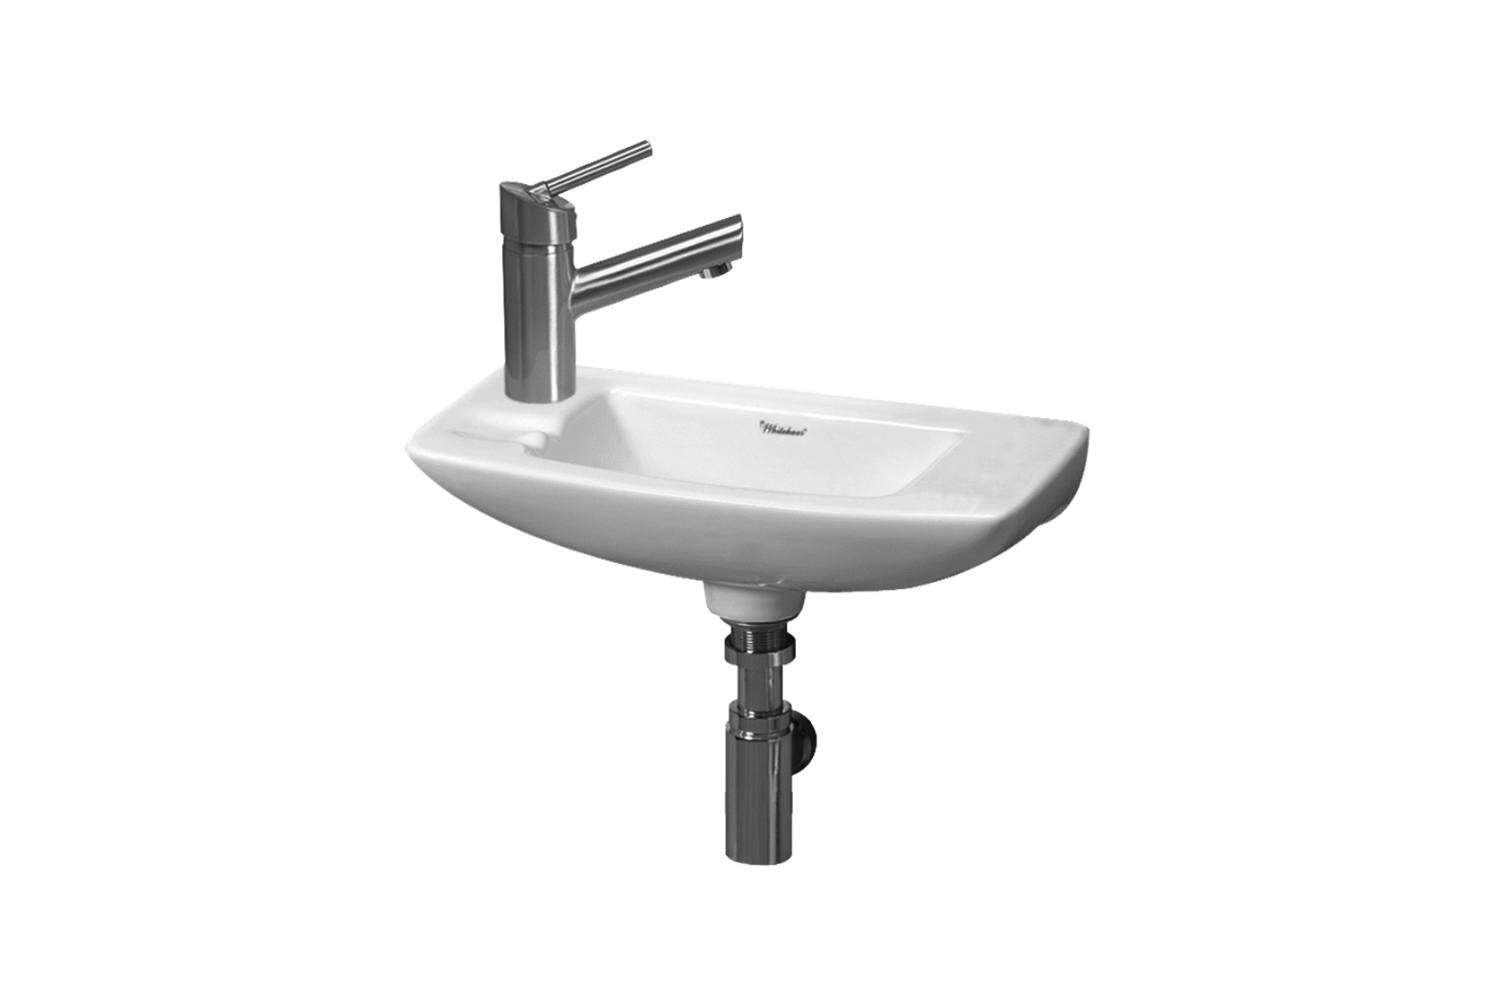 the whitehaus isabella wall mounted bathroom sink measures \17.5 inches for \$\ 20